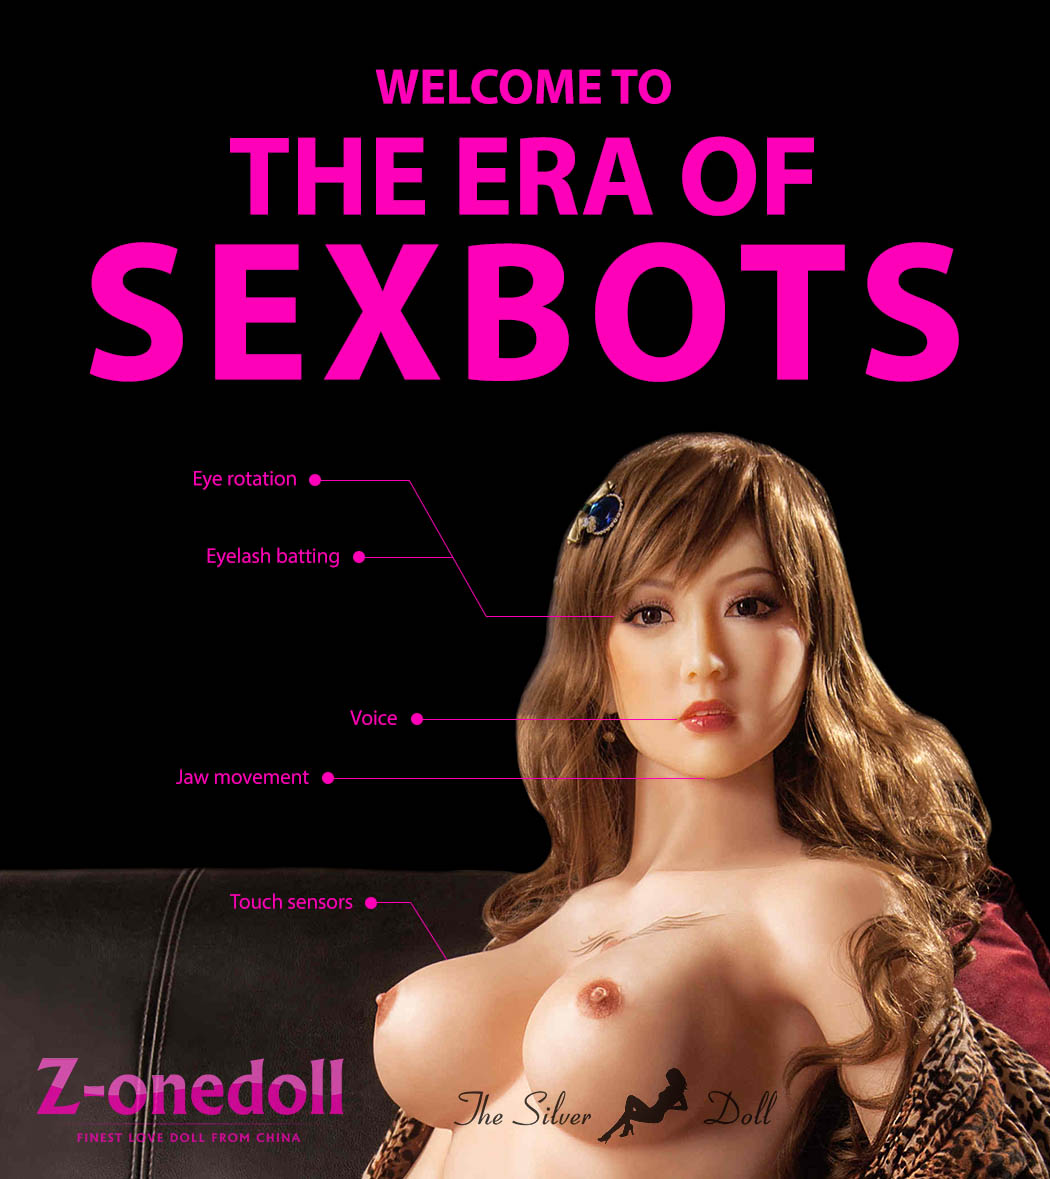 Z-onedoll Sexbot